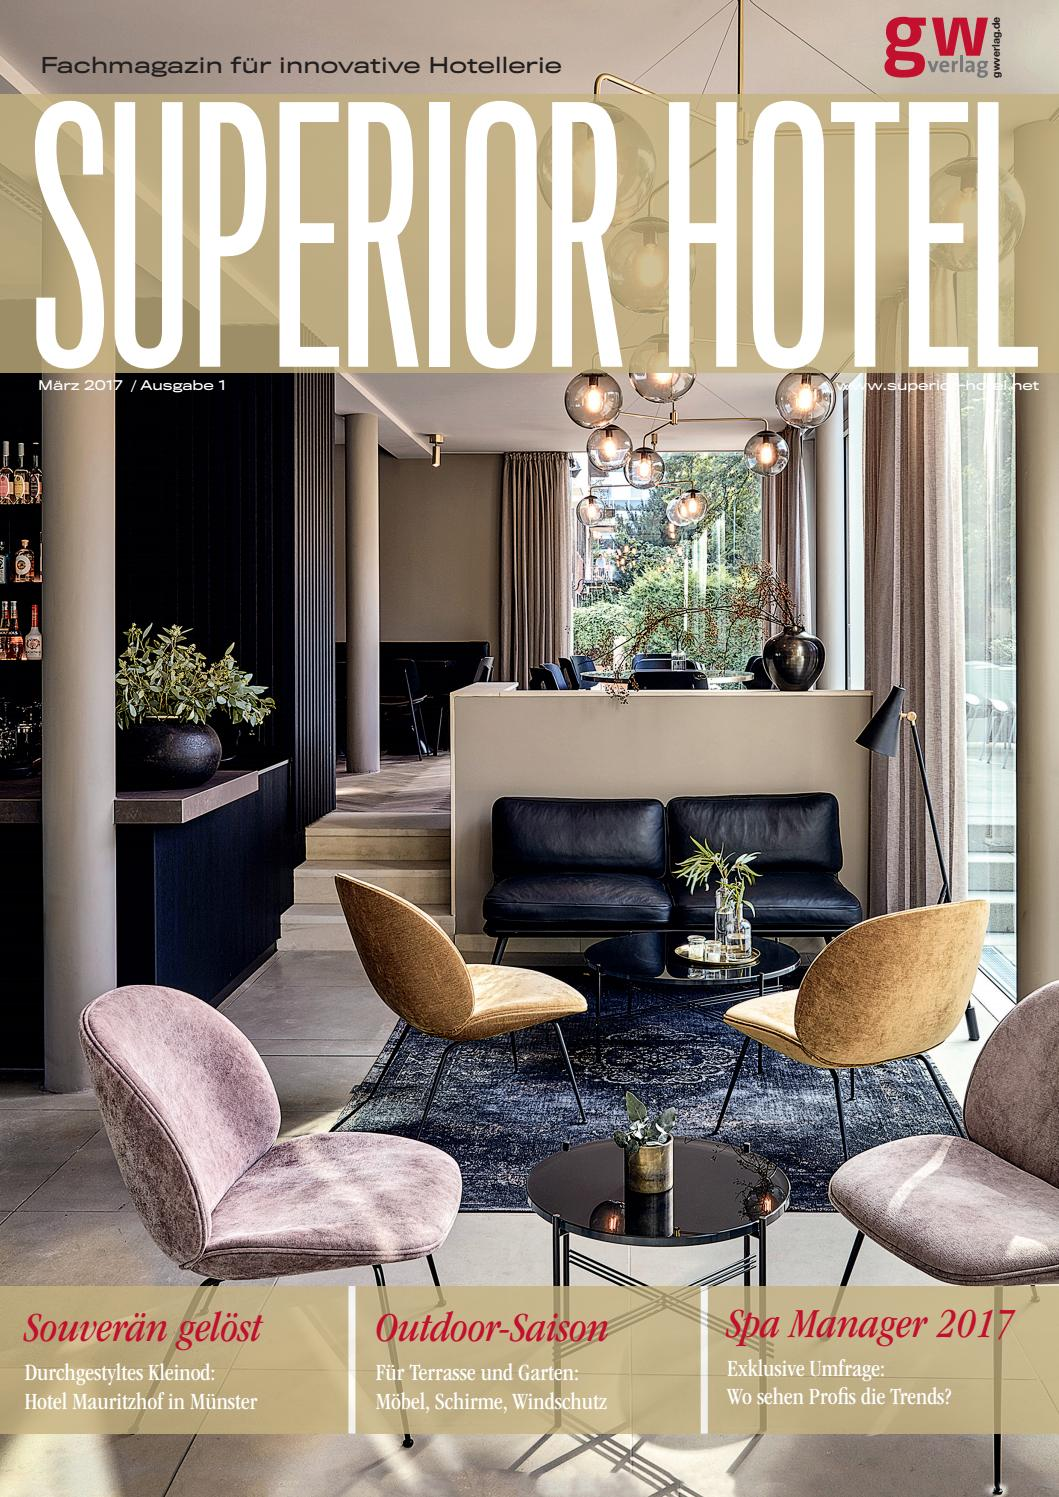 Superior Hotel 1/2017 by GW VERLAG - issuu